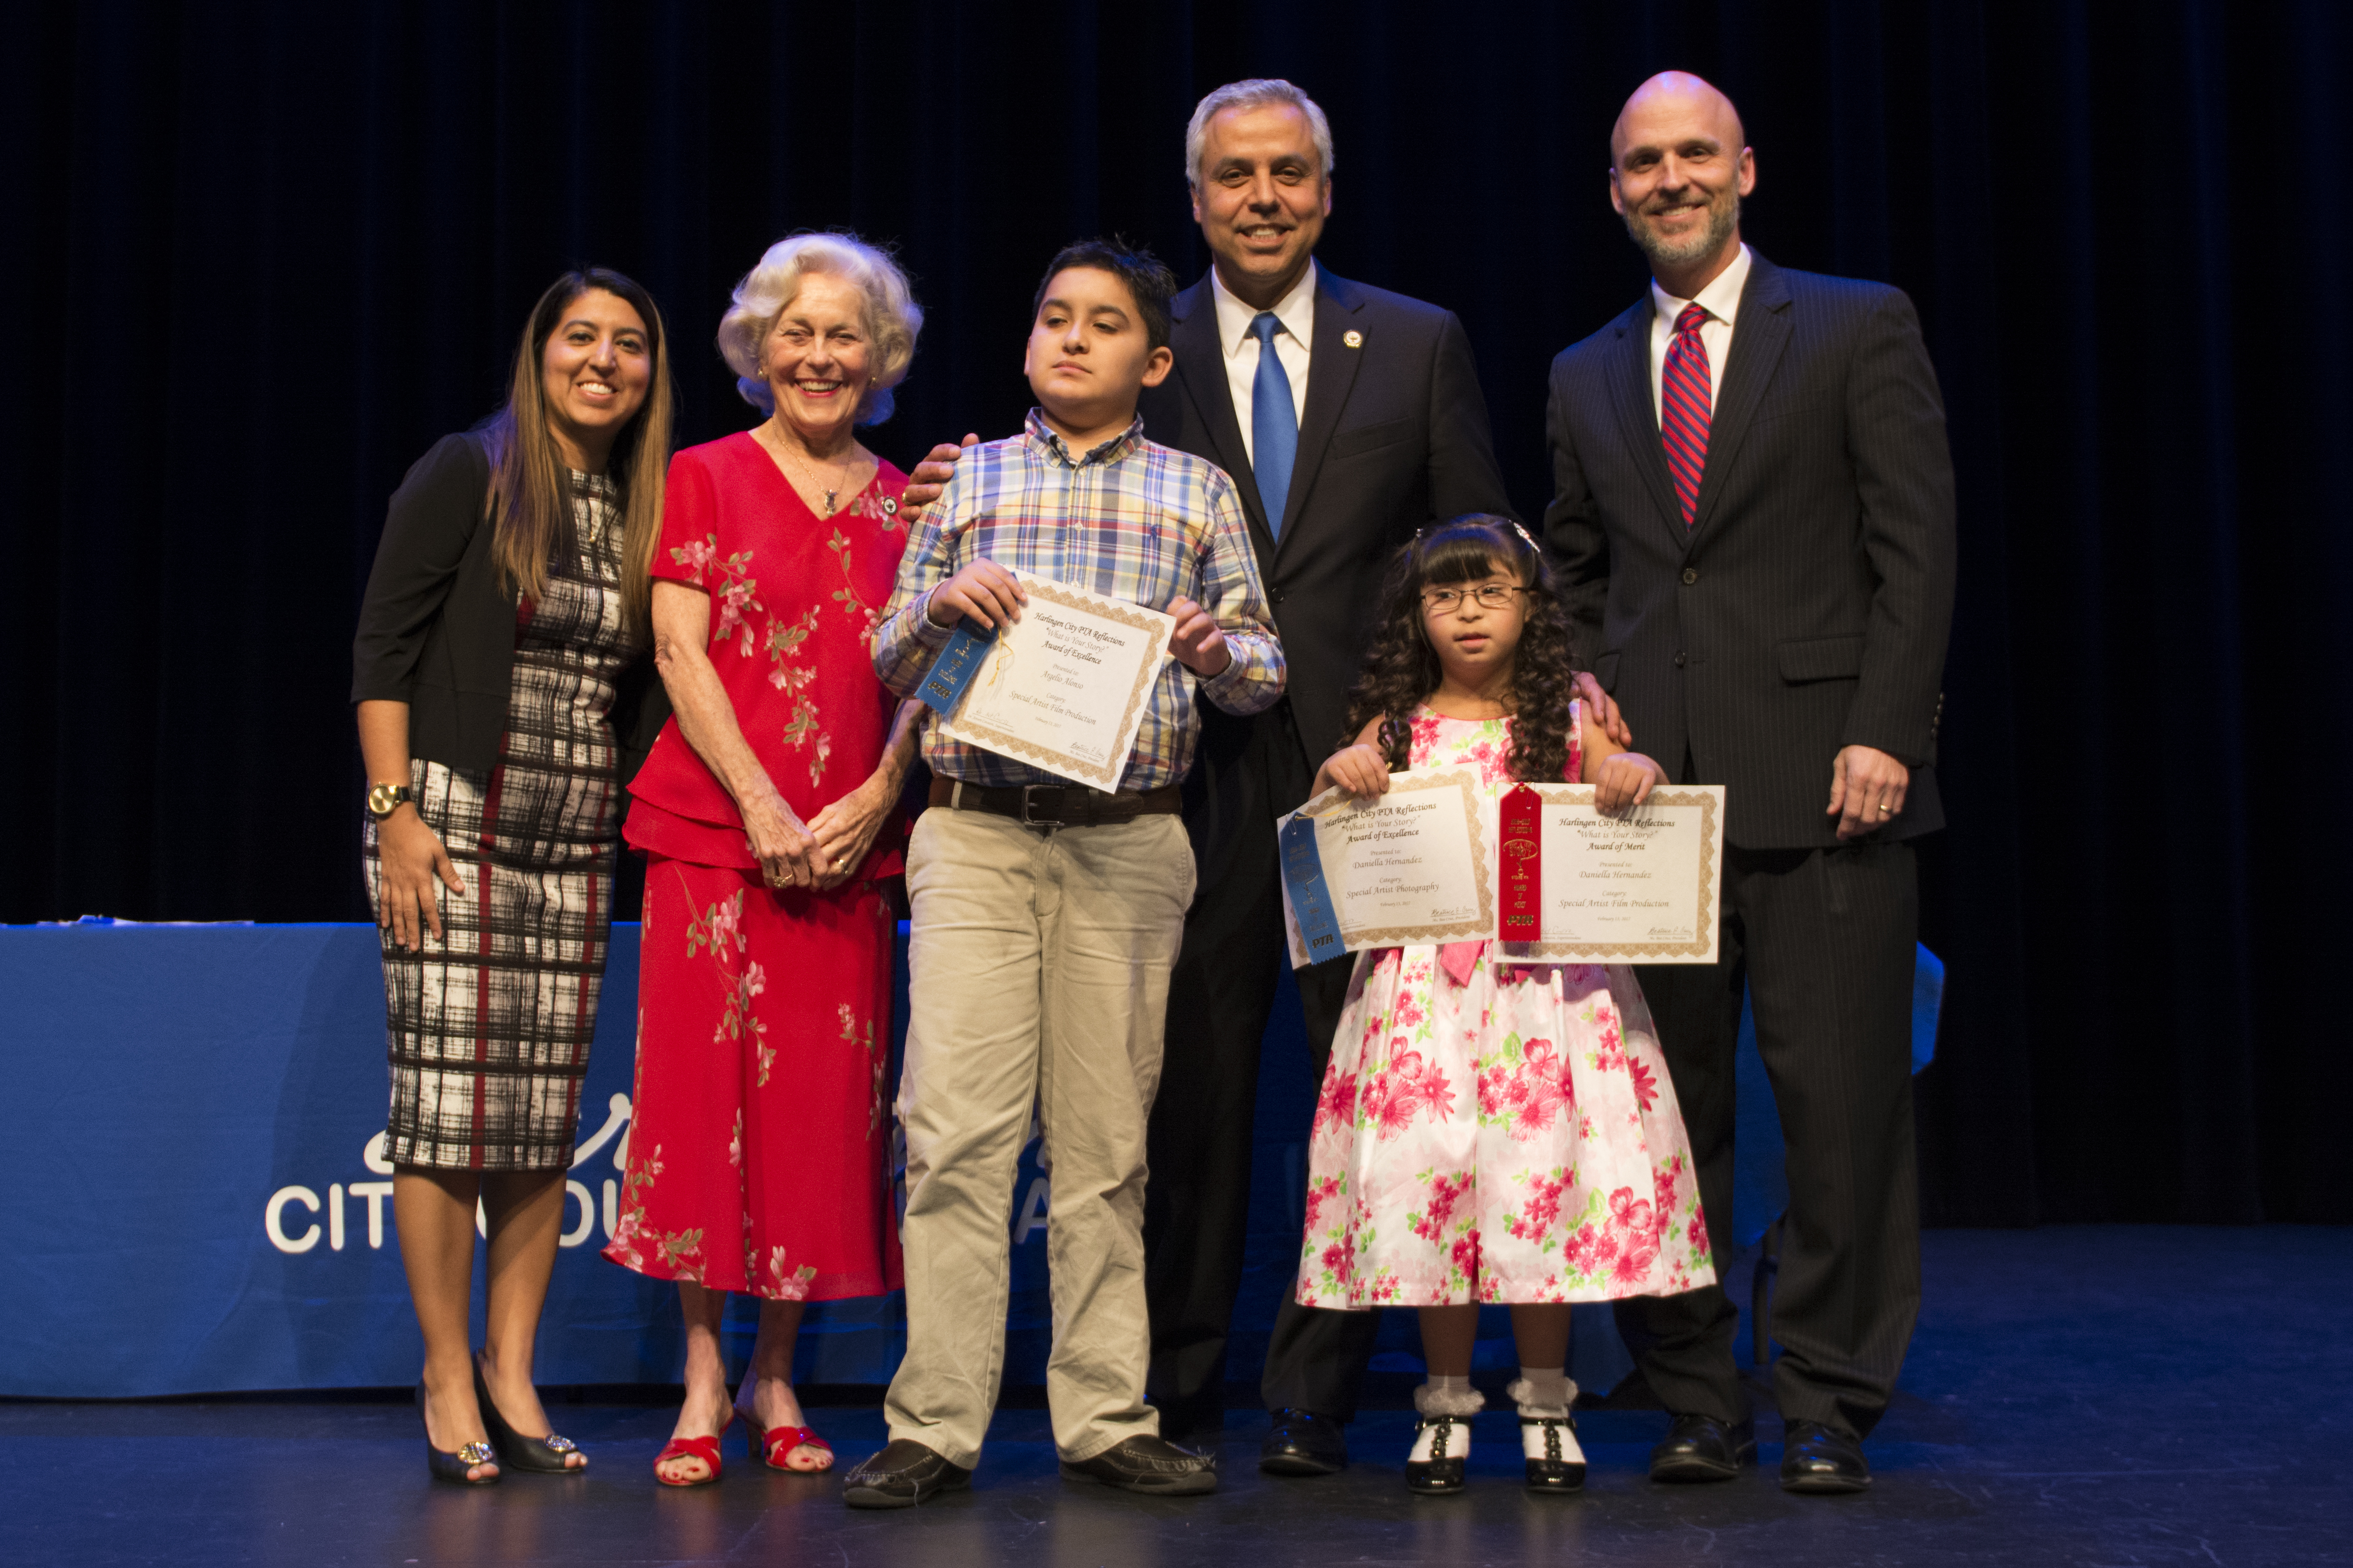 Texas PTA recognizes Dr. Cavazos as 2017 Superintendent of the Year